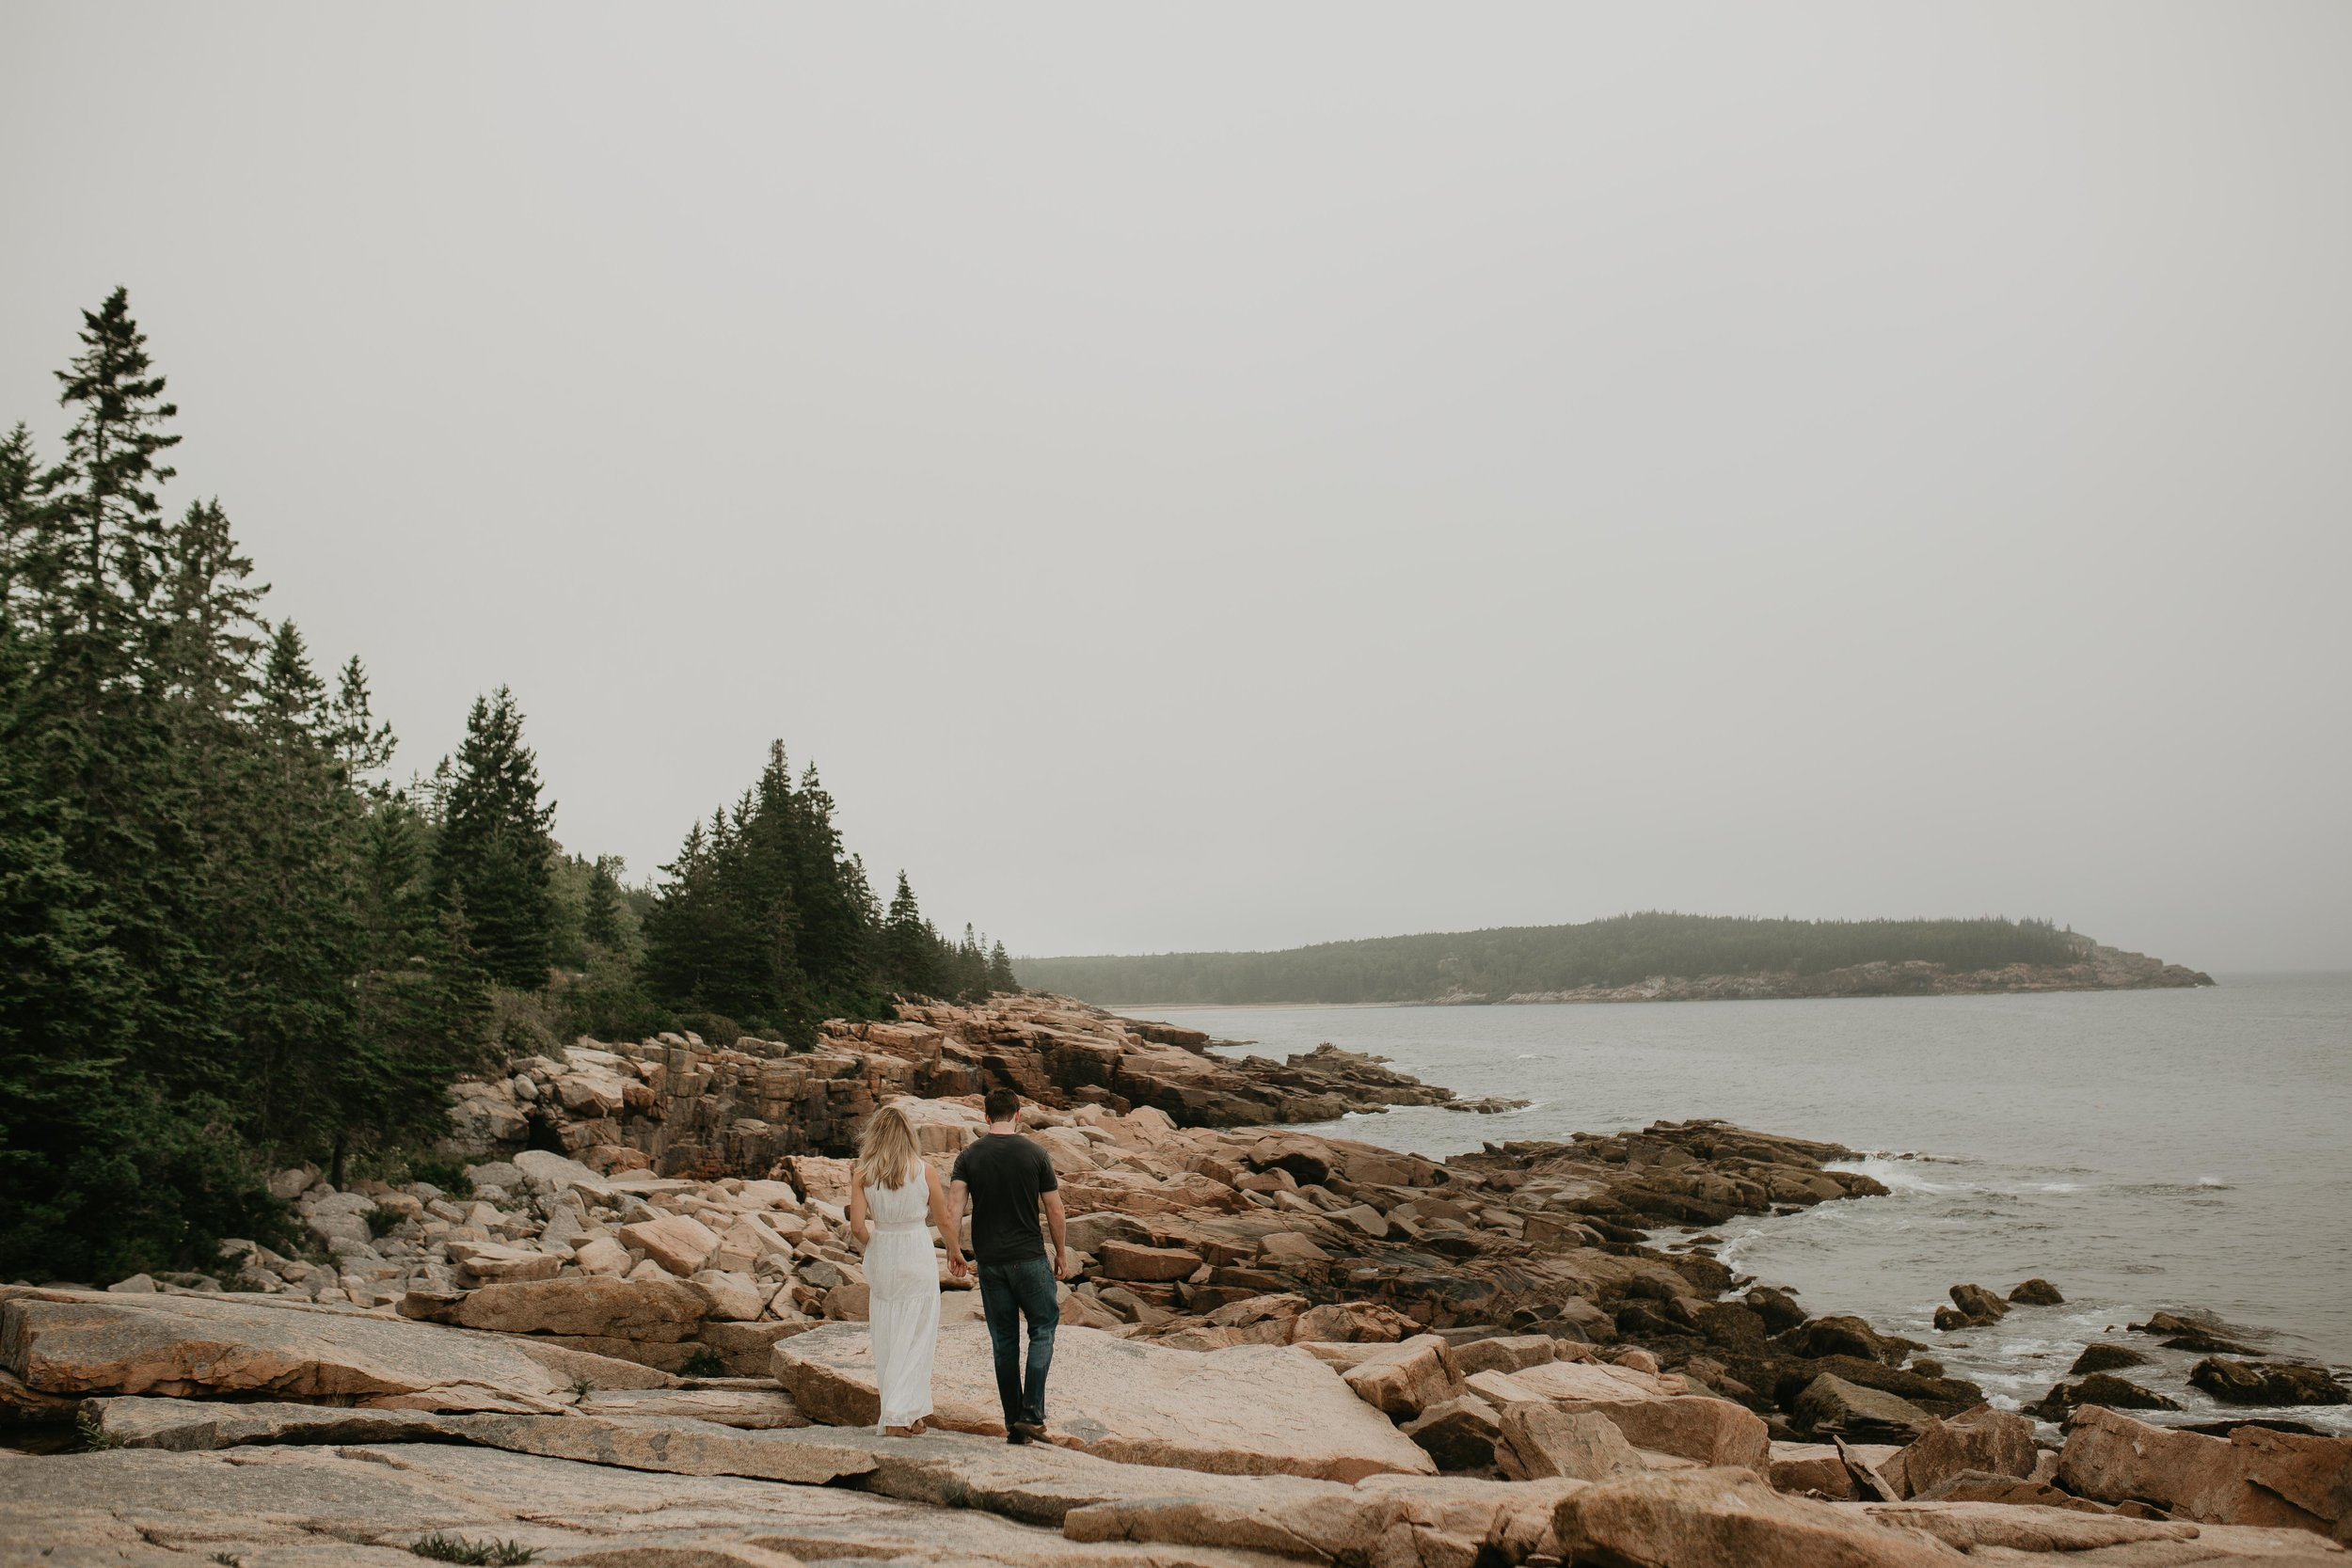 nicole-daacke-photography-acadia-national-park-adventurous-engagement-session-photos-otter-cliffs-forests-coastline-sand-beach-adventure-session-bar-harbor-mt-desert-island-elopement-fall-bass-harbor-lighthouse-wedding-maine-landscape-photographer-19.jpg